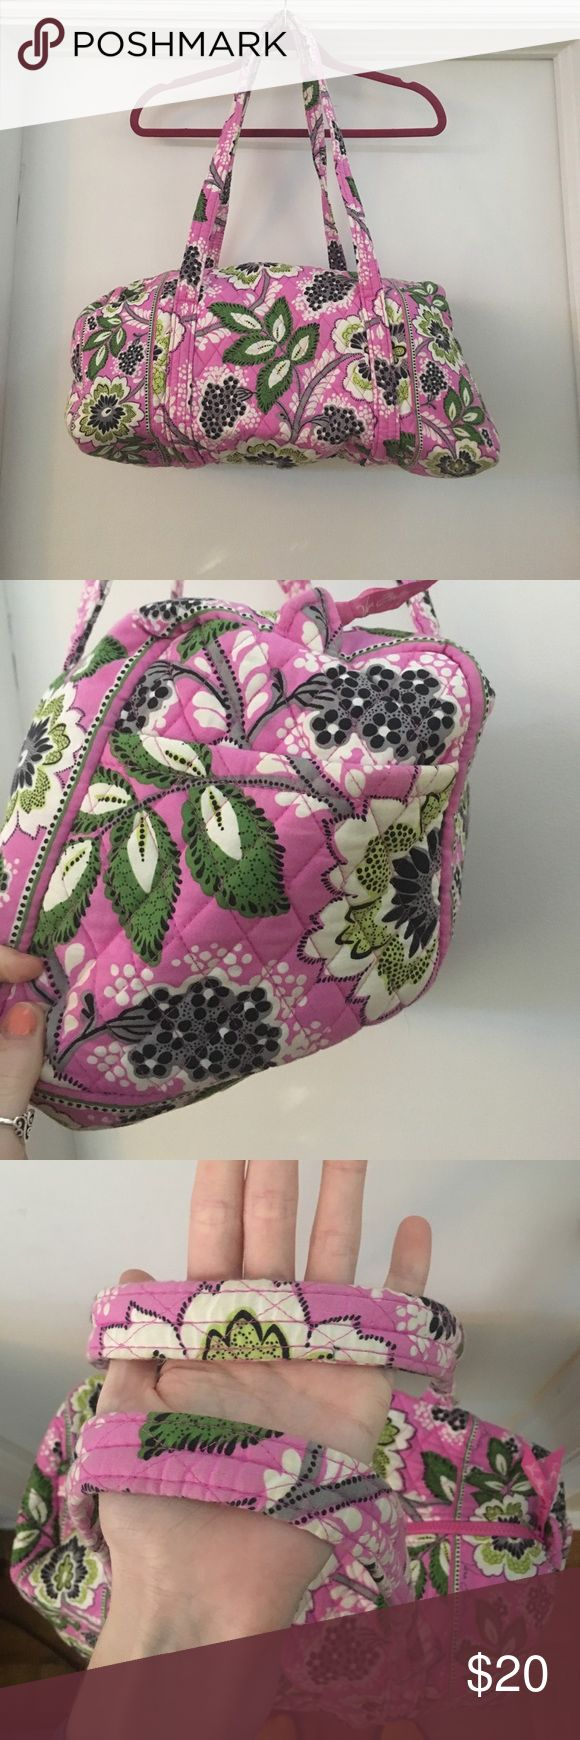 Vera Bradley Overnight Bag Used, slightly discolored handles. Very great quality and good for overnight trips. Vera Bradley Bags Travel Bags